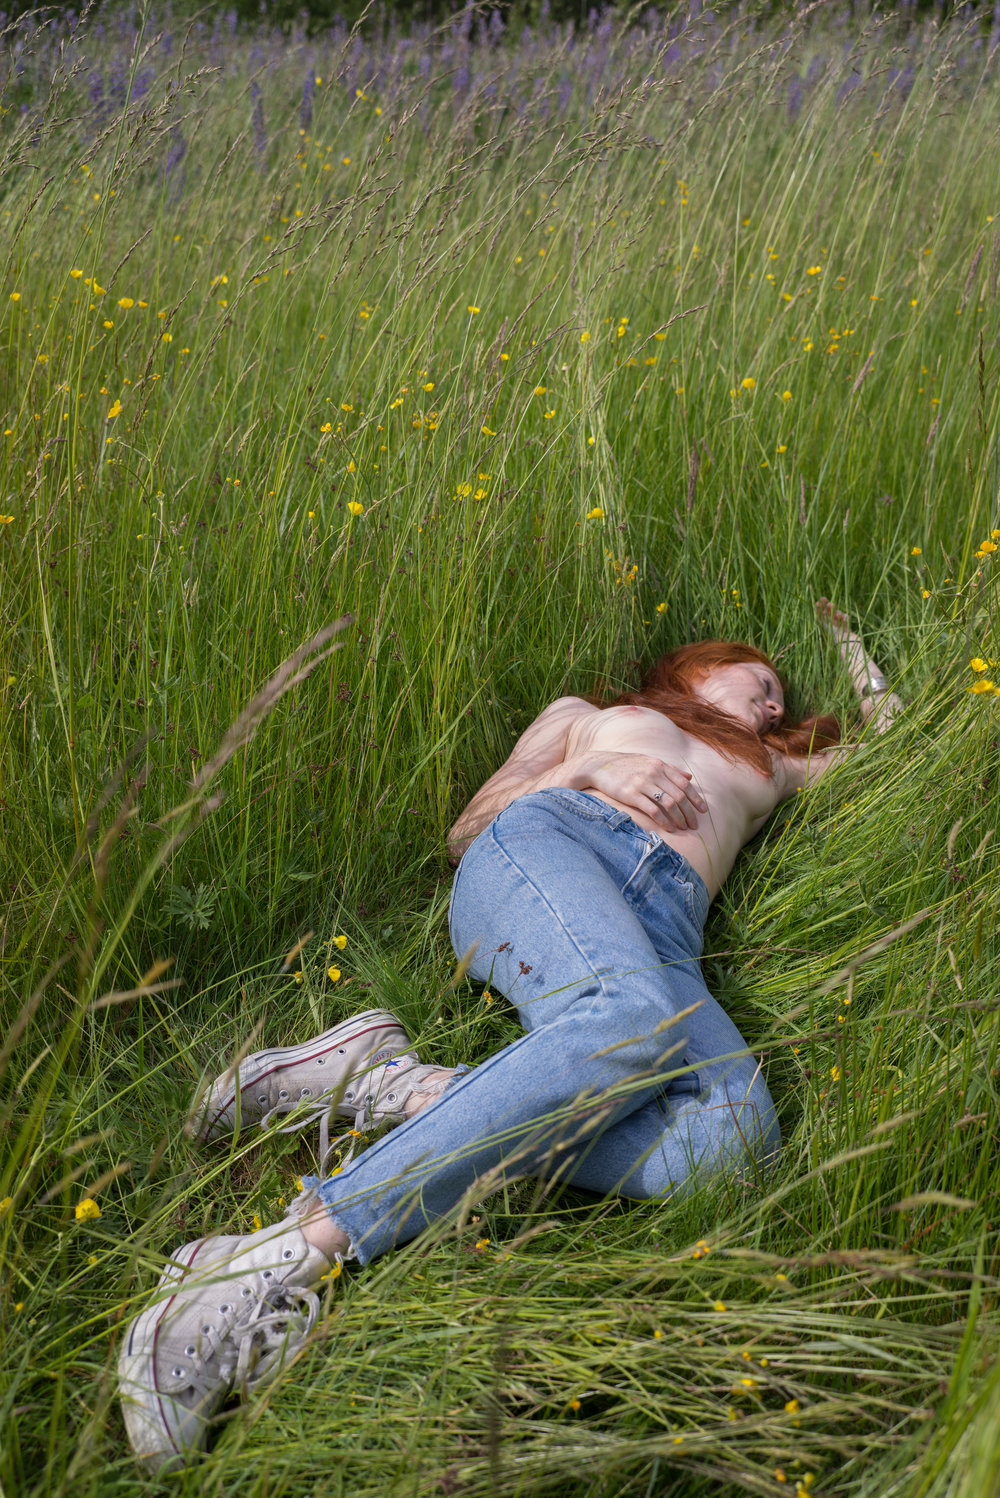 Laying Topless in the Grass Claire (psp)-2.jpg